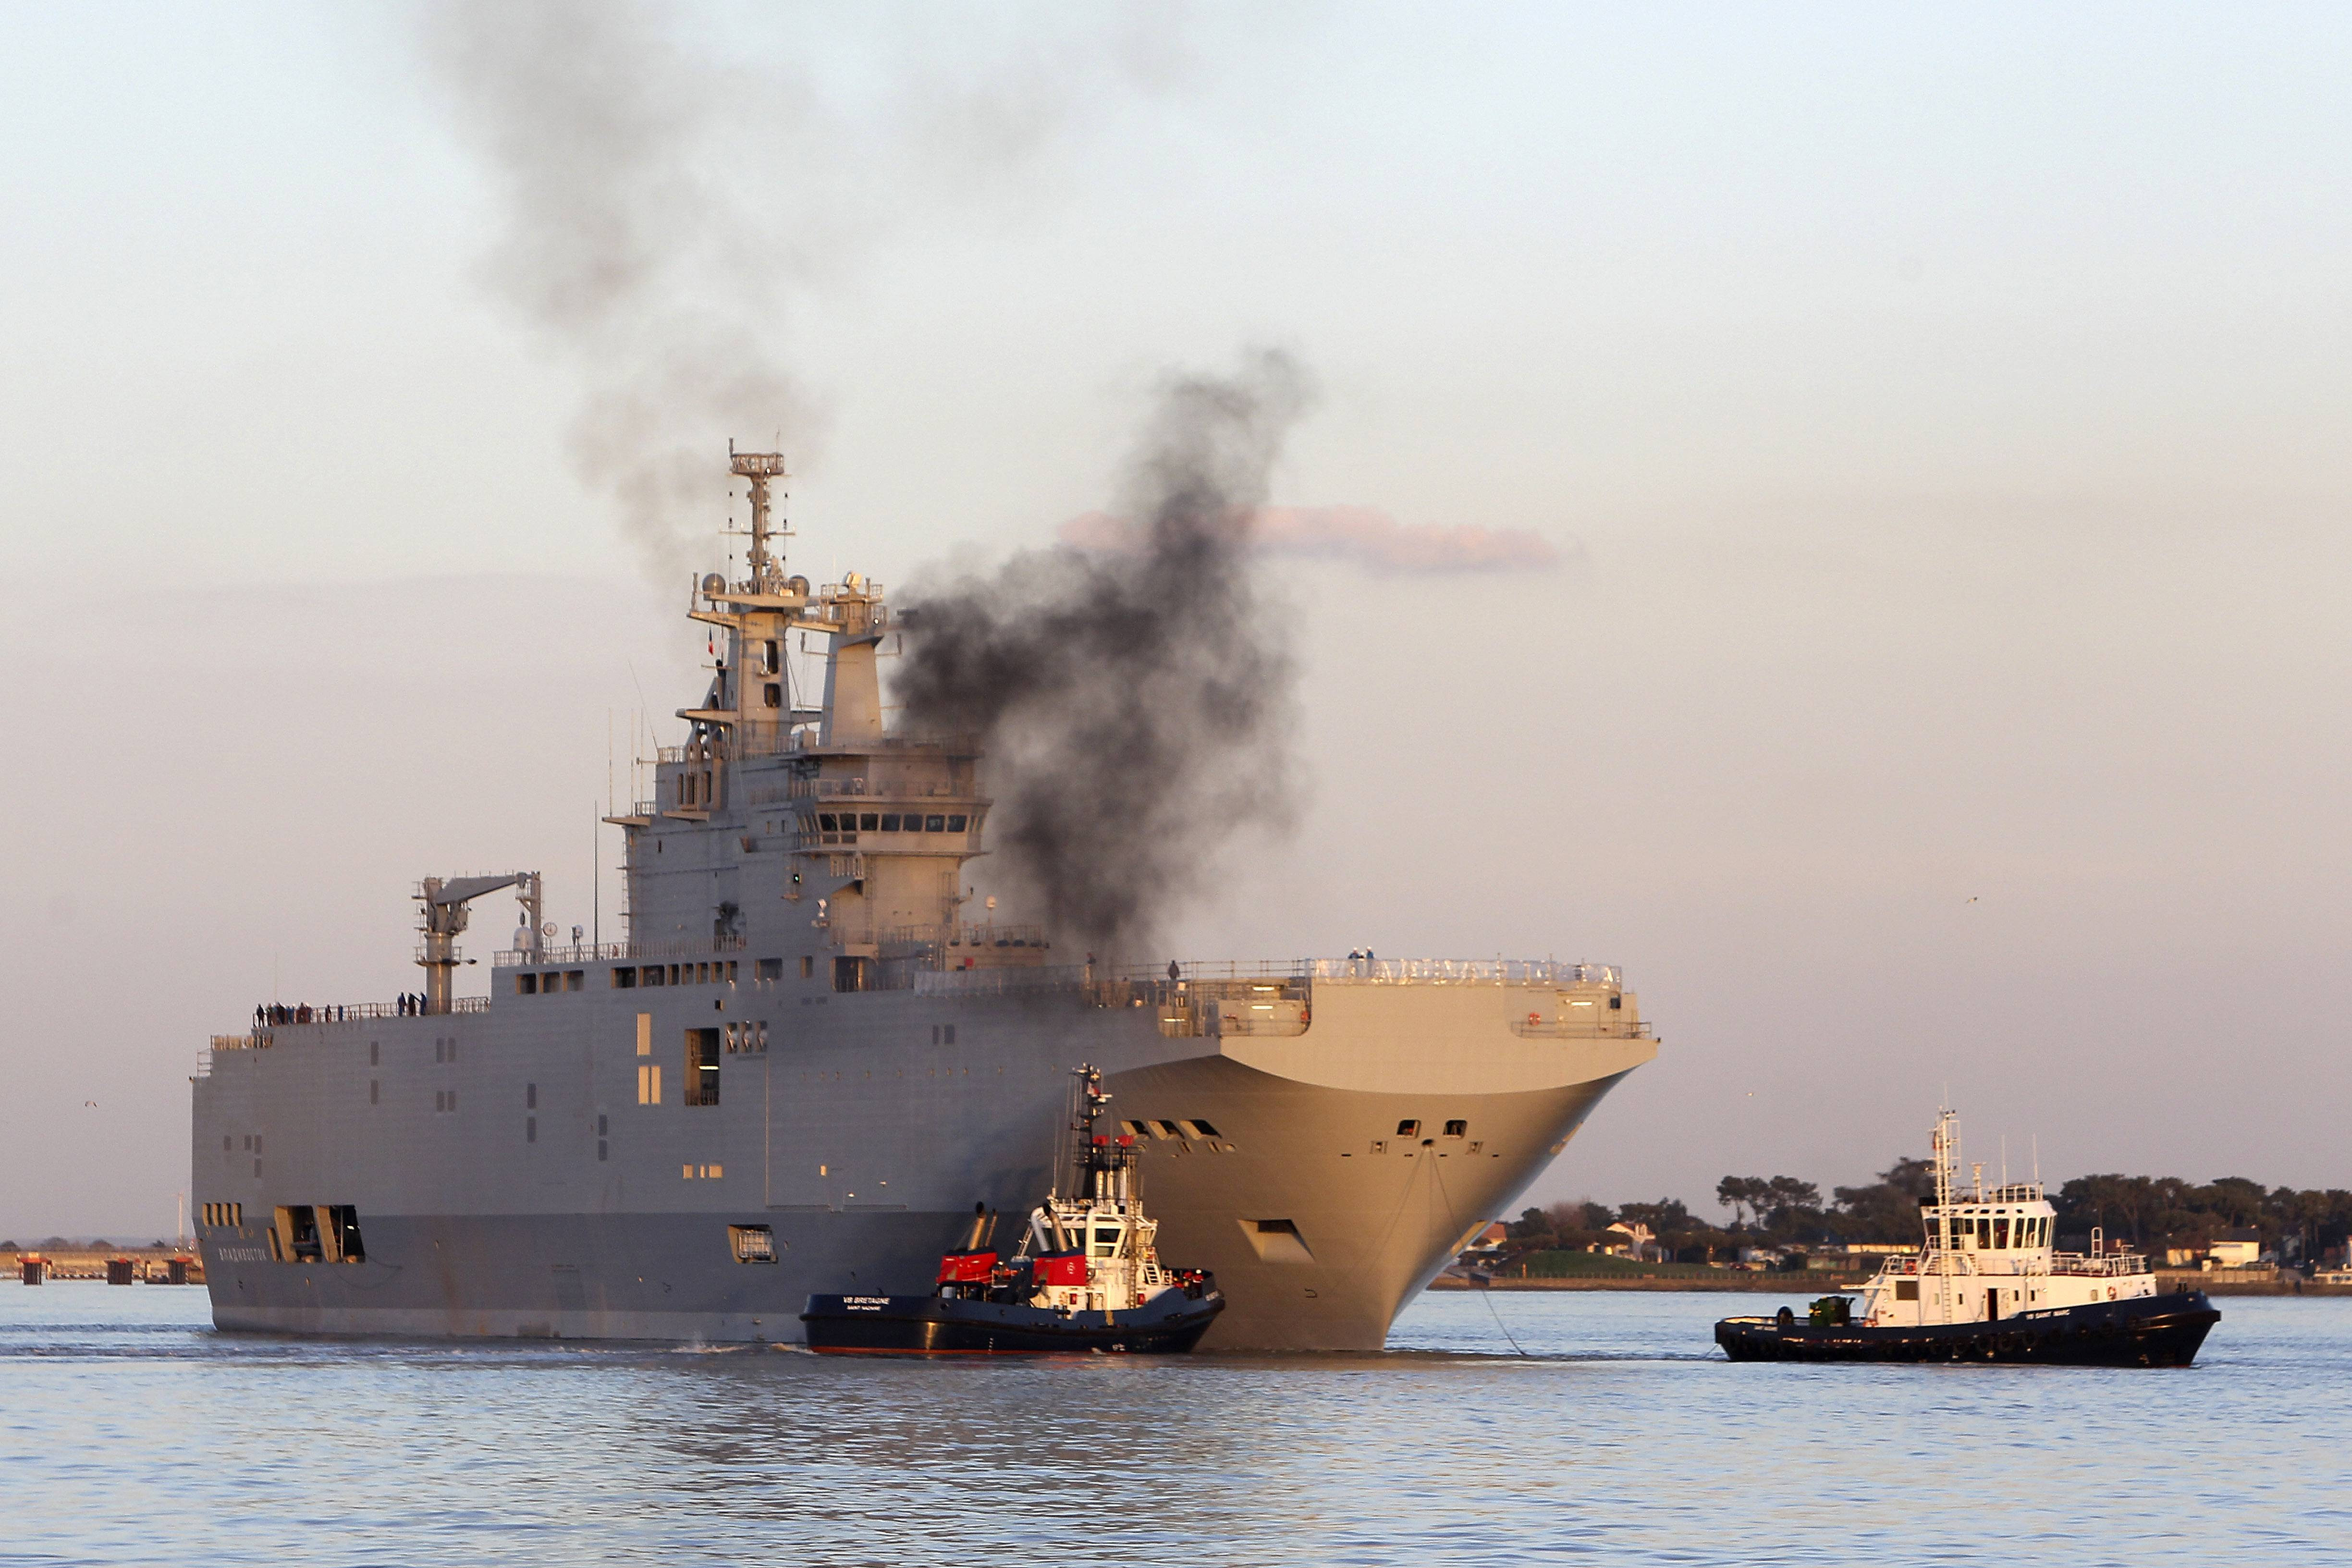 French-built warship BPC Vladivostock, designed to strengthen Russia's ability to deploy troops, tanks and helicopter gunships, leaves the Saint Nazaire's harbor, western France, for its test run on the open sea off coast of France. France is suspending the delivery of a hulking warship to Russia amid security concerns about Moscow's actions in neighboring Ukraine,